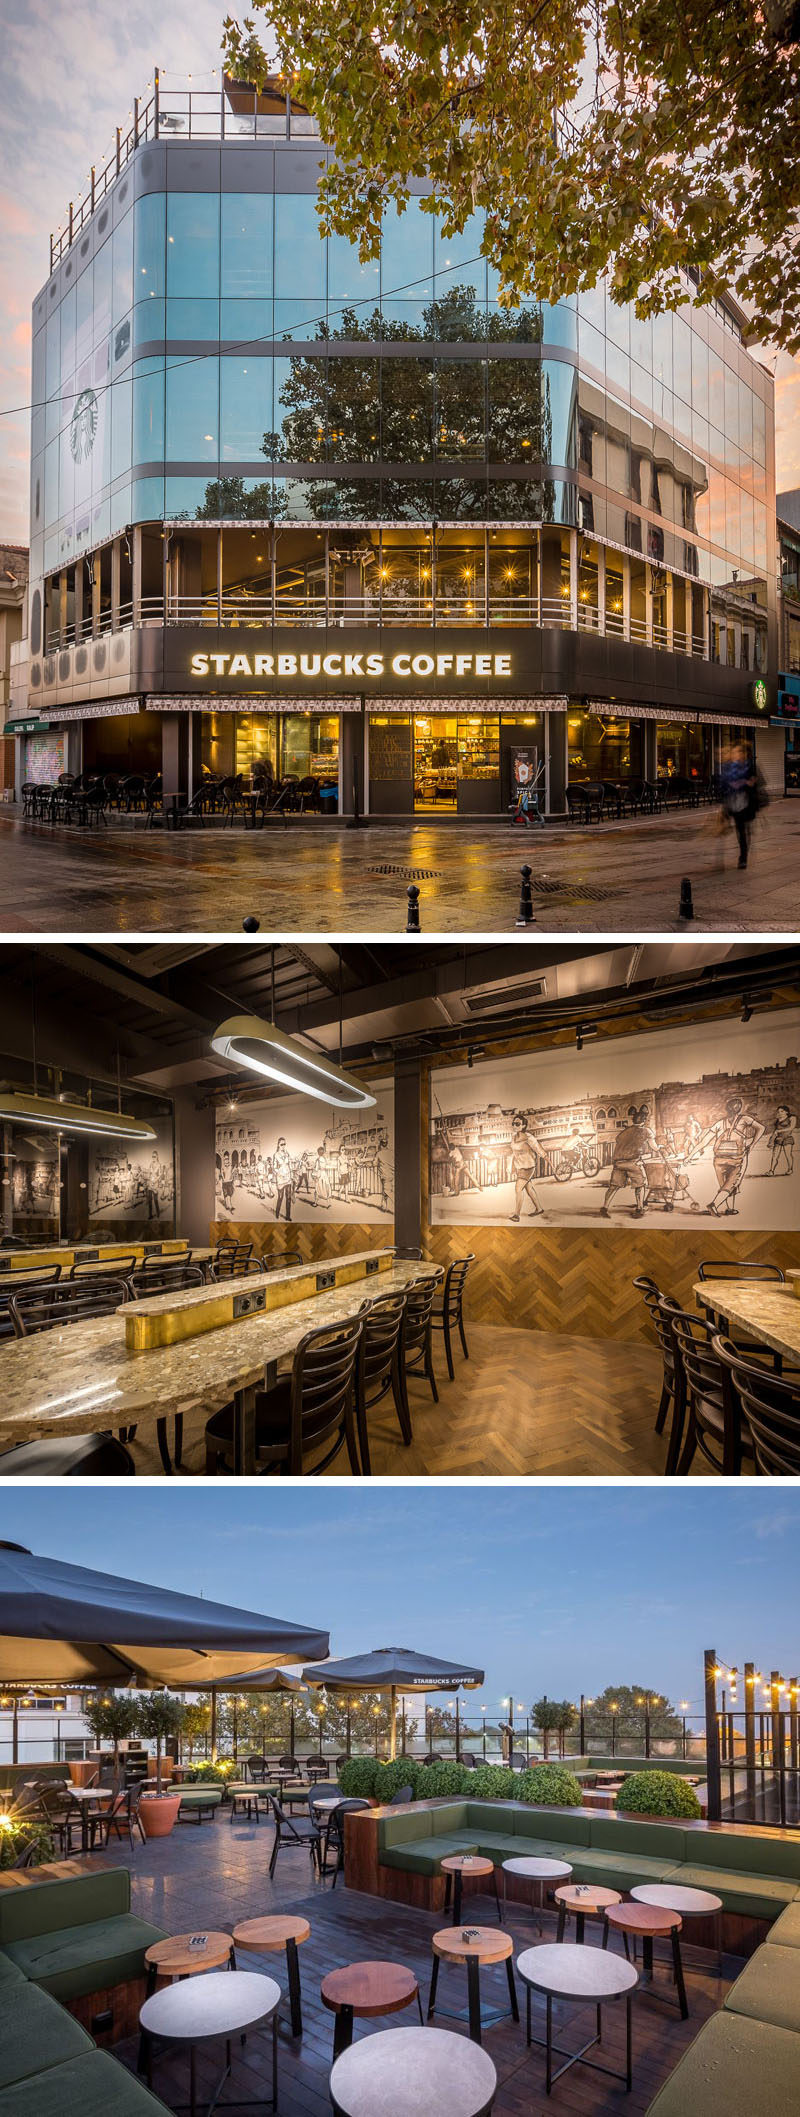 11 Starbucks Coffee Shops From Around The World // The four level location features a rooftop patio that looks out over Istanbul's Bosphorus Strait, and tall windows to allow those sitting inside to enjoy the views of the water and surrounding city.